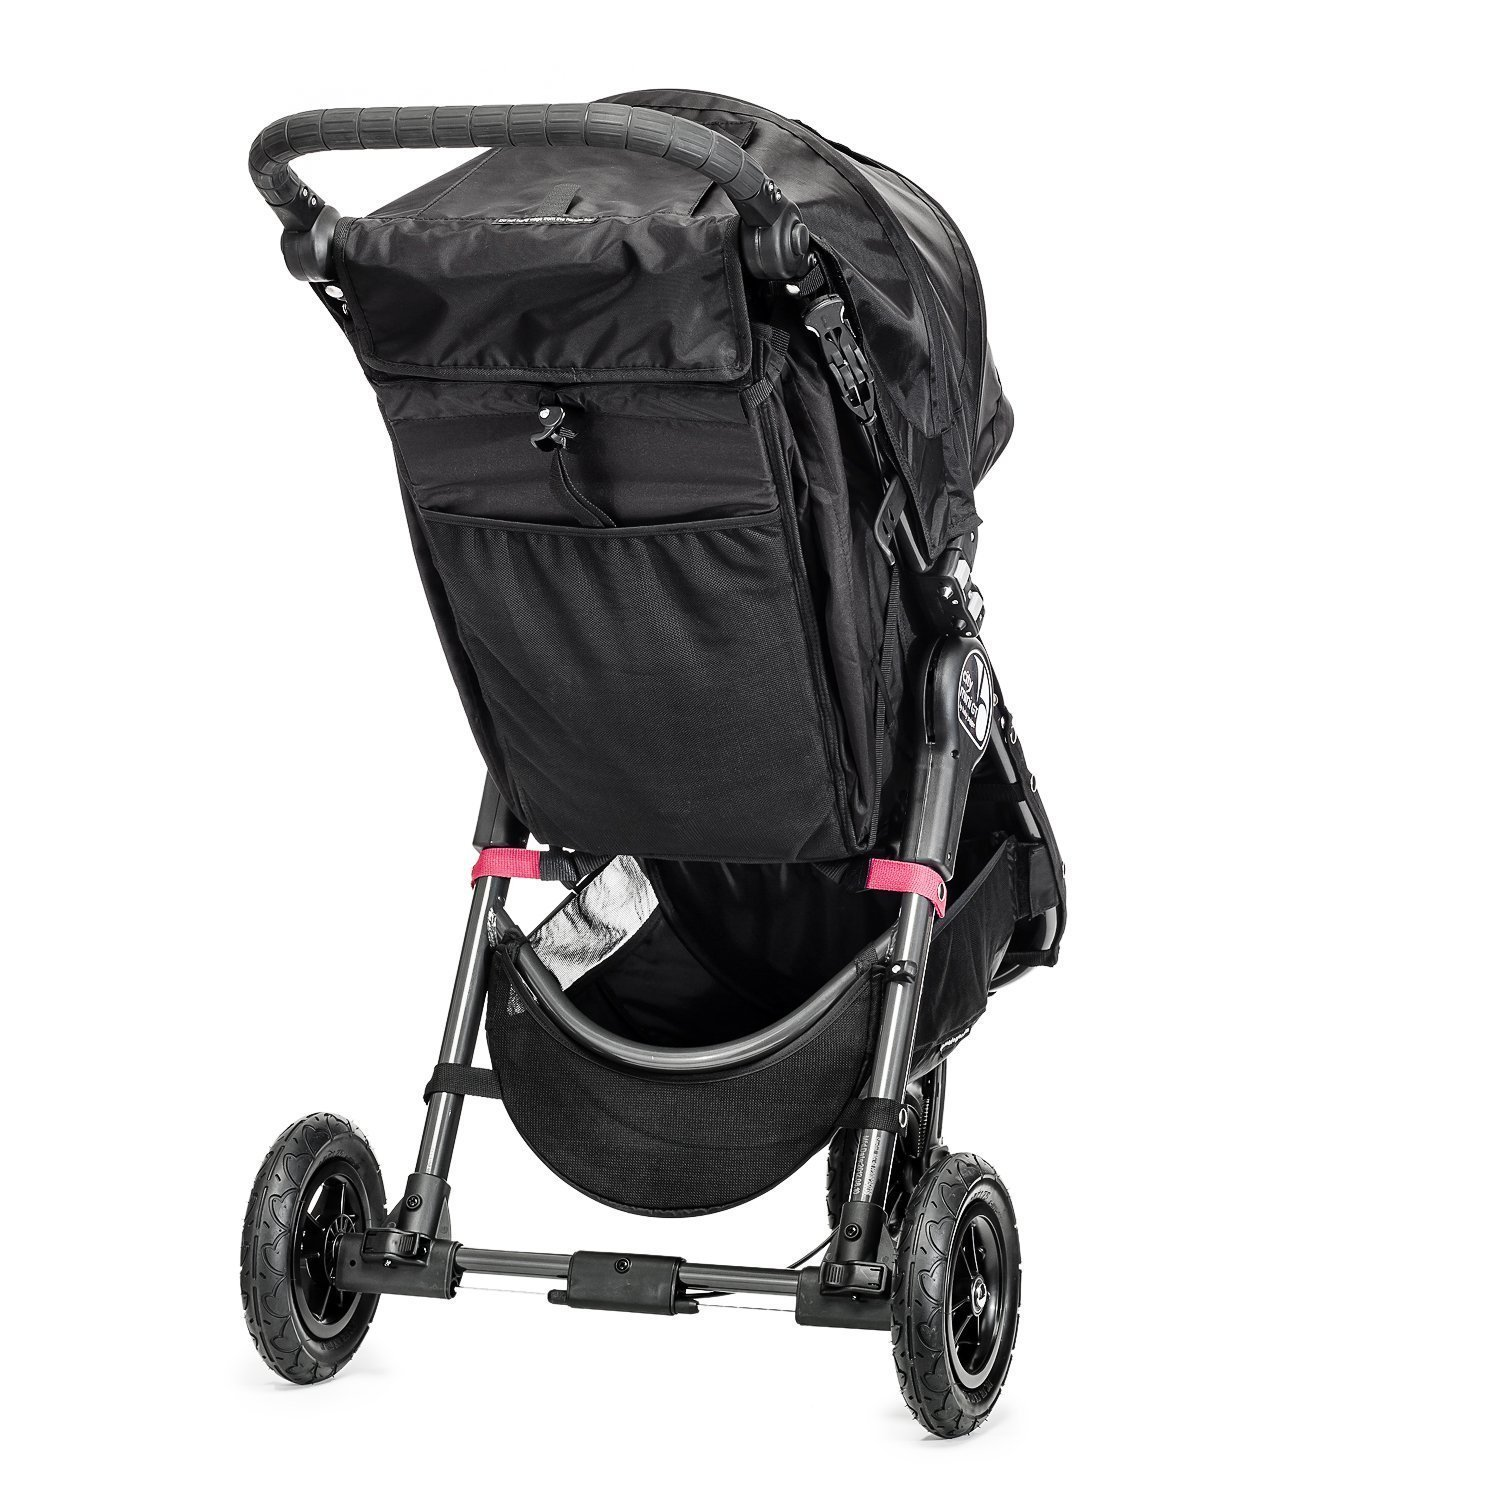 Baby Jogger 2016 City Mini GT Stroller in Black with Parent Console by Baby Jogger (Image #4)